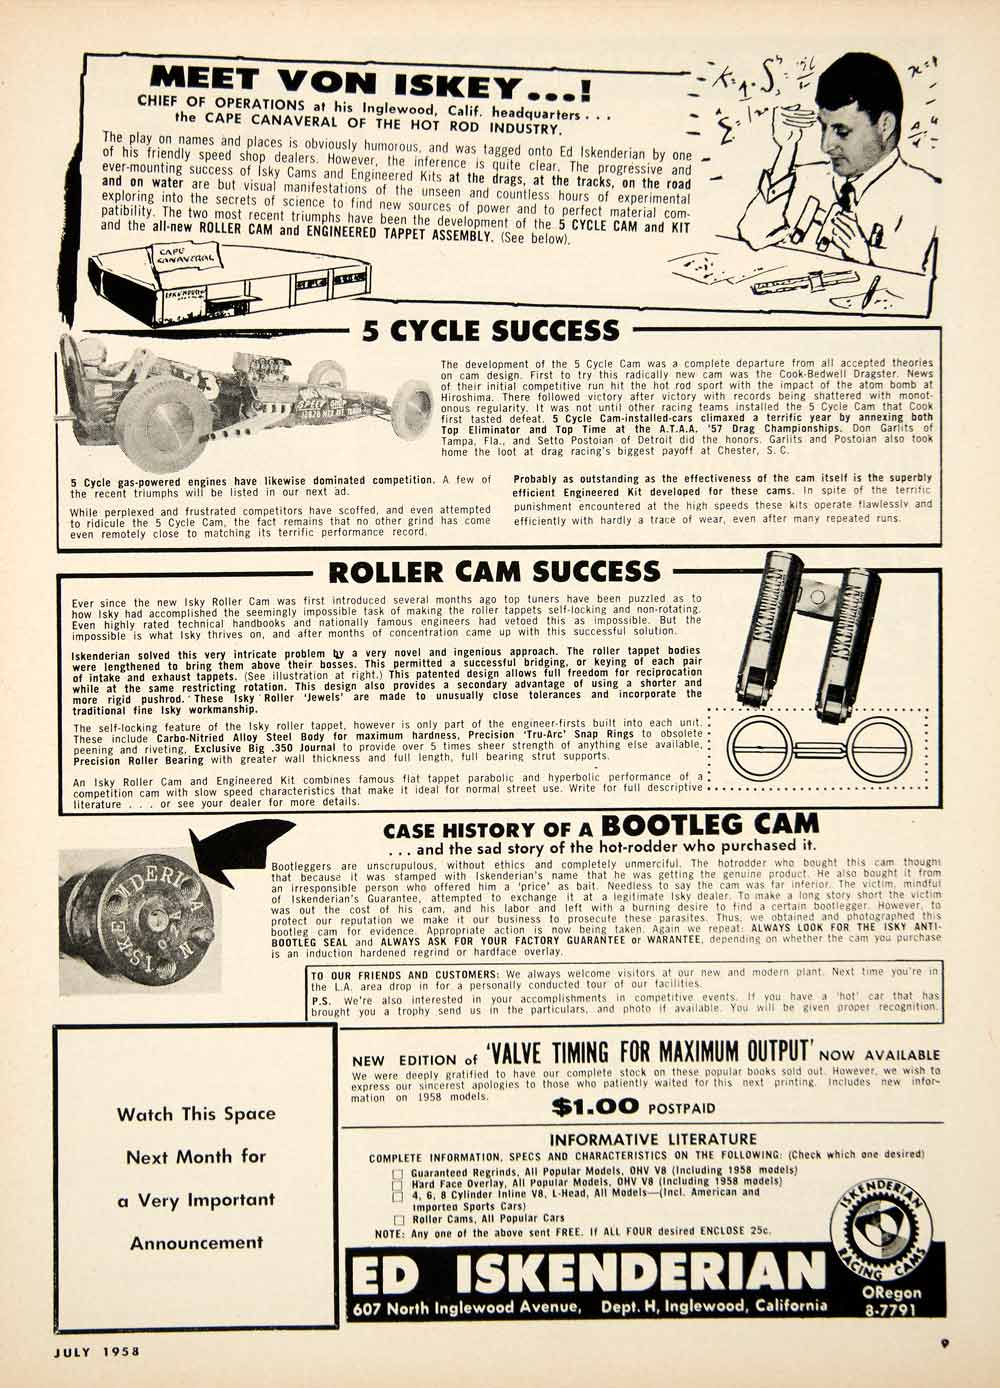 1958 Ad Ed Iskenderian 607 North Inglewood Avenue 5 Cycle Roller Cam YHR1